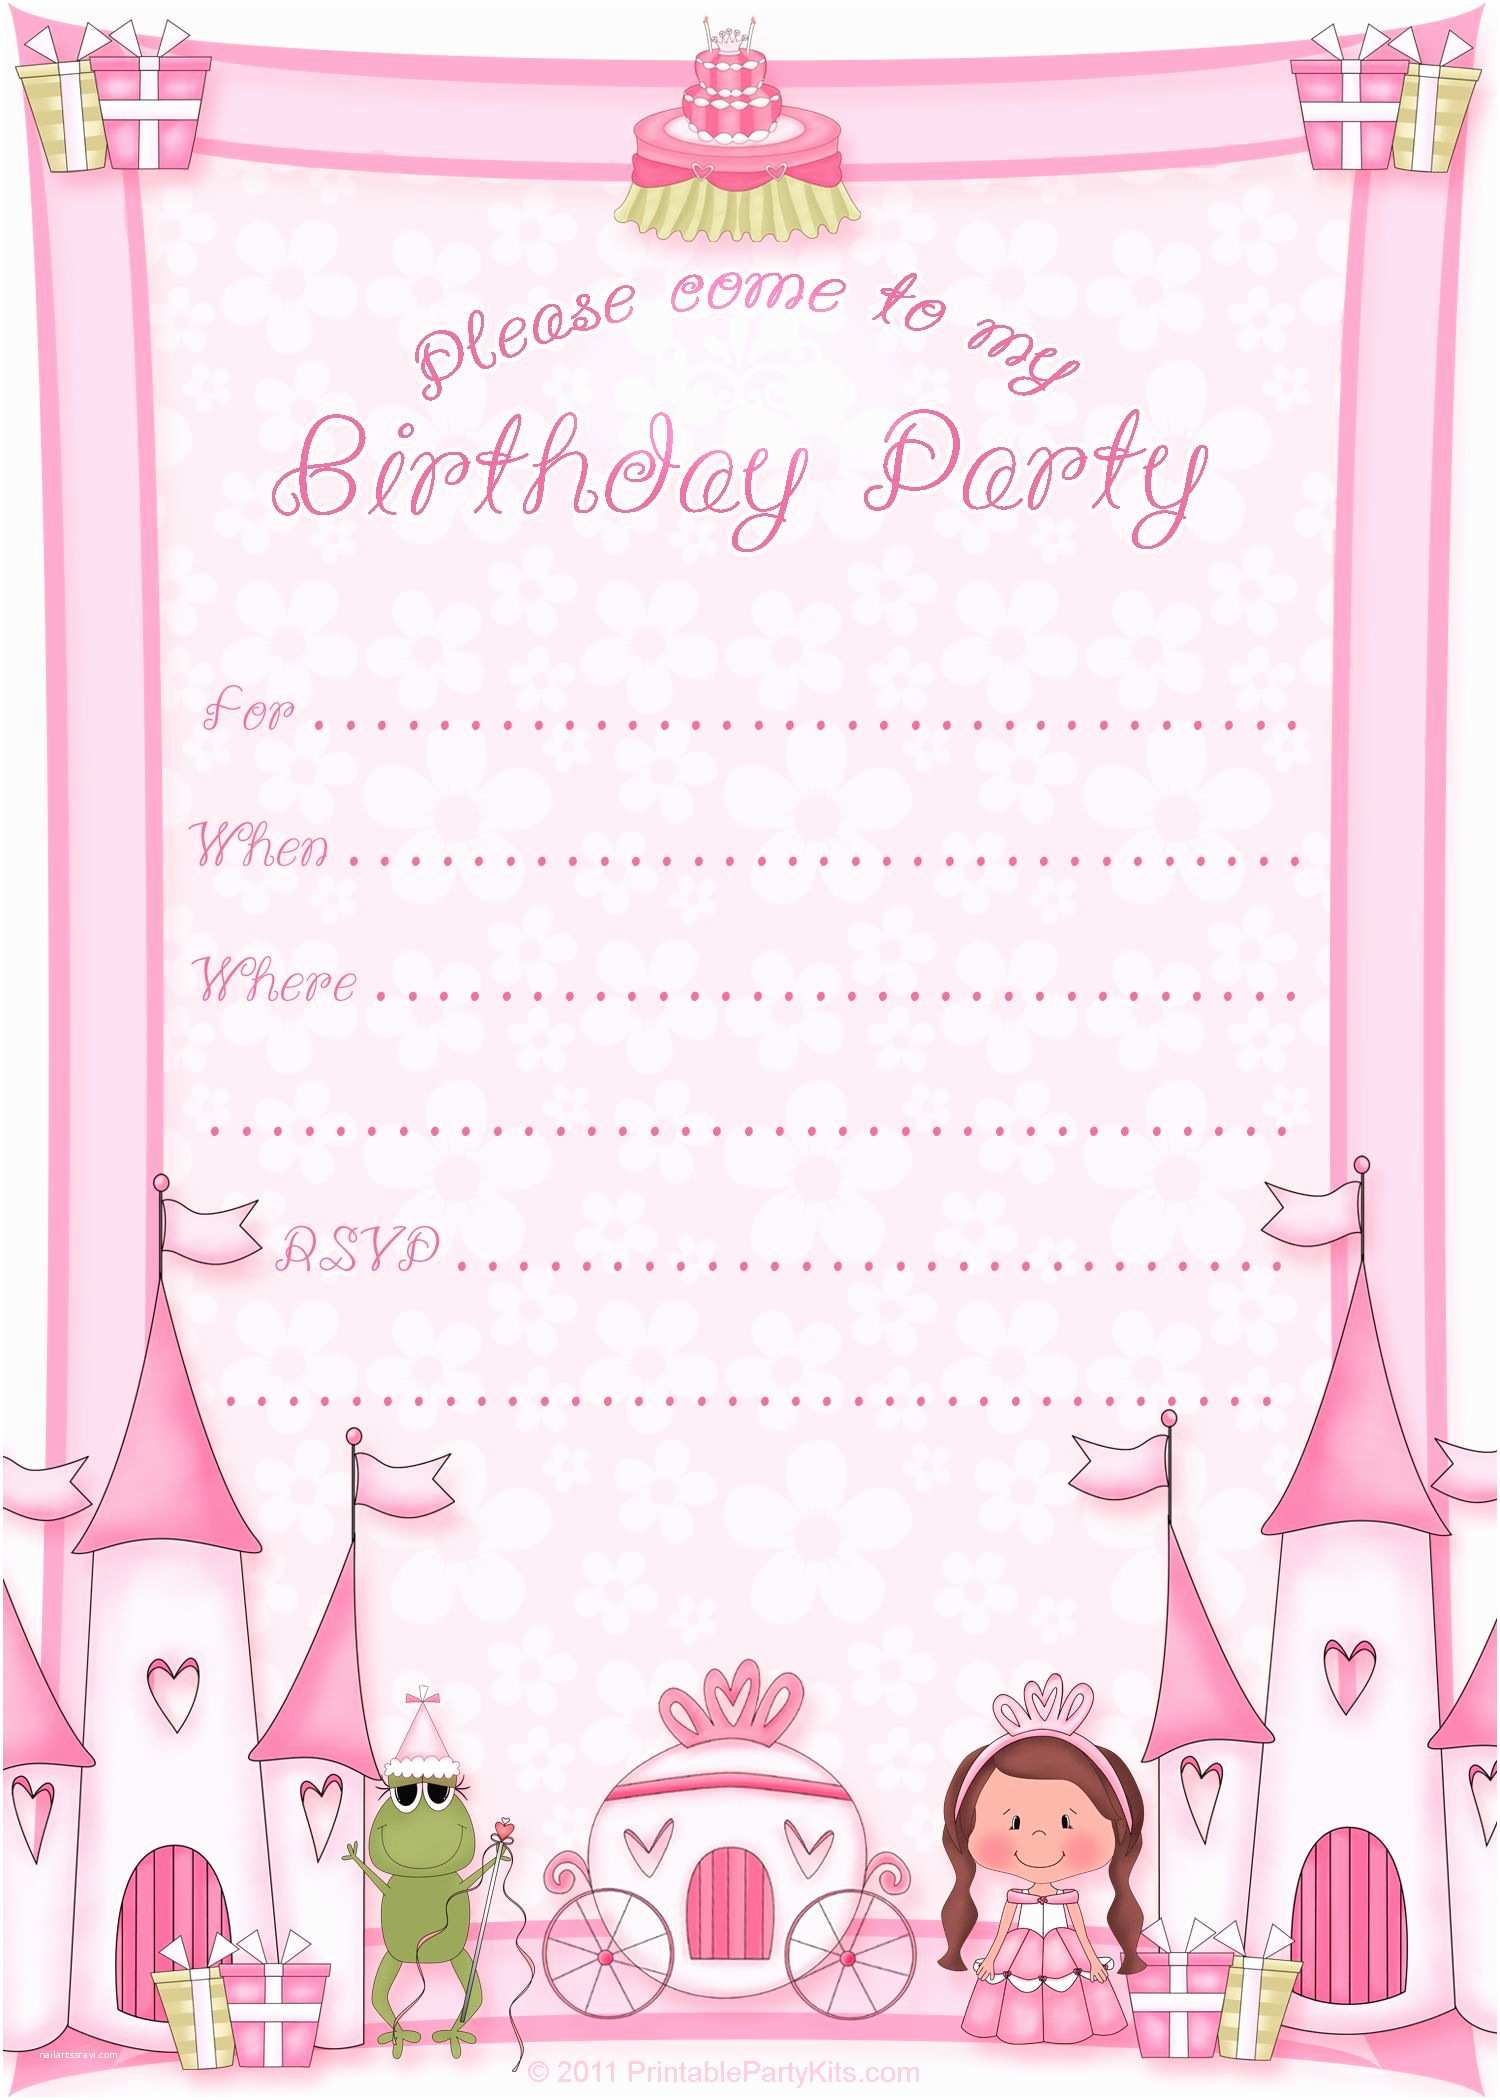 Baby Birthday Invitations Free Printable Invitation Pinned for Kidfolio the